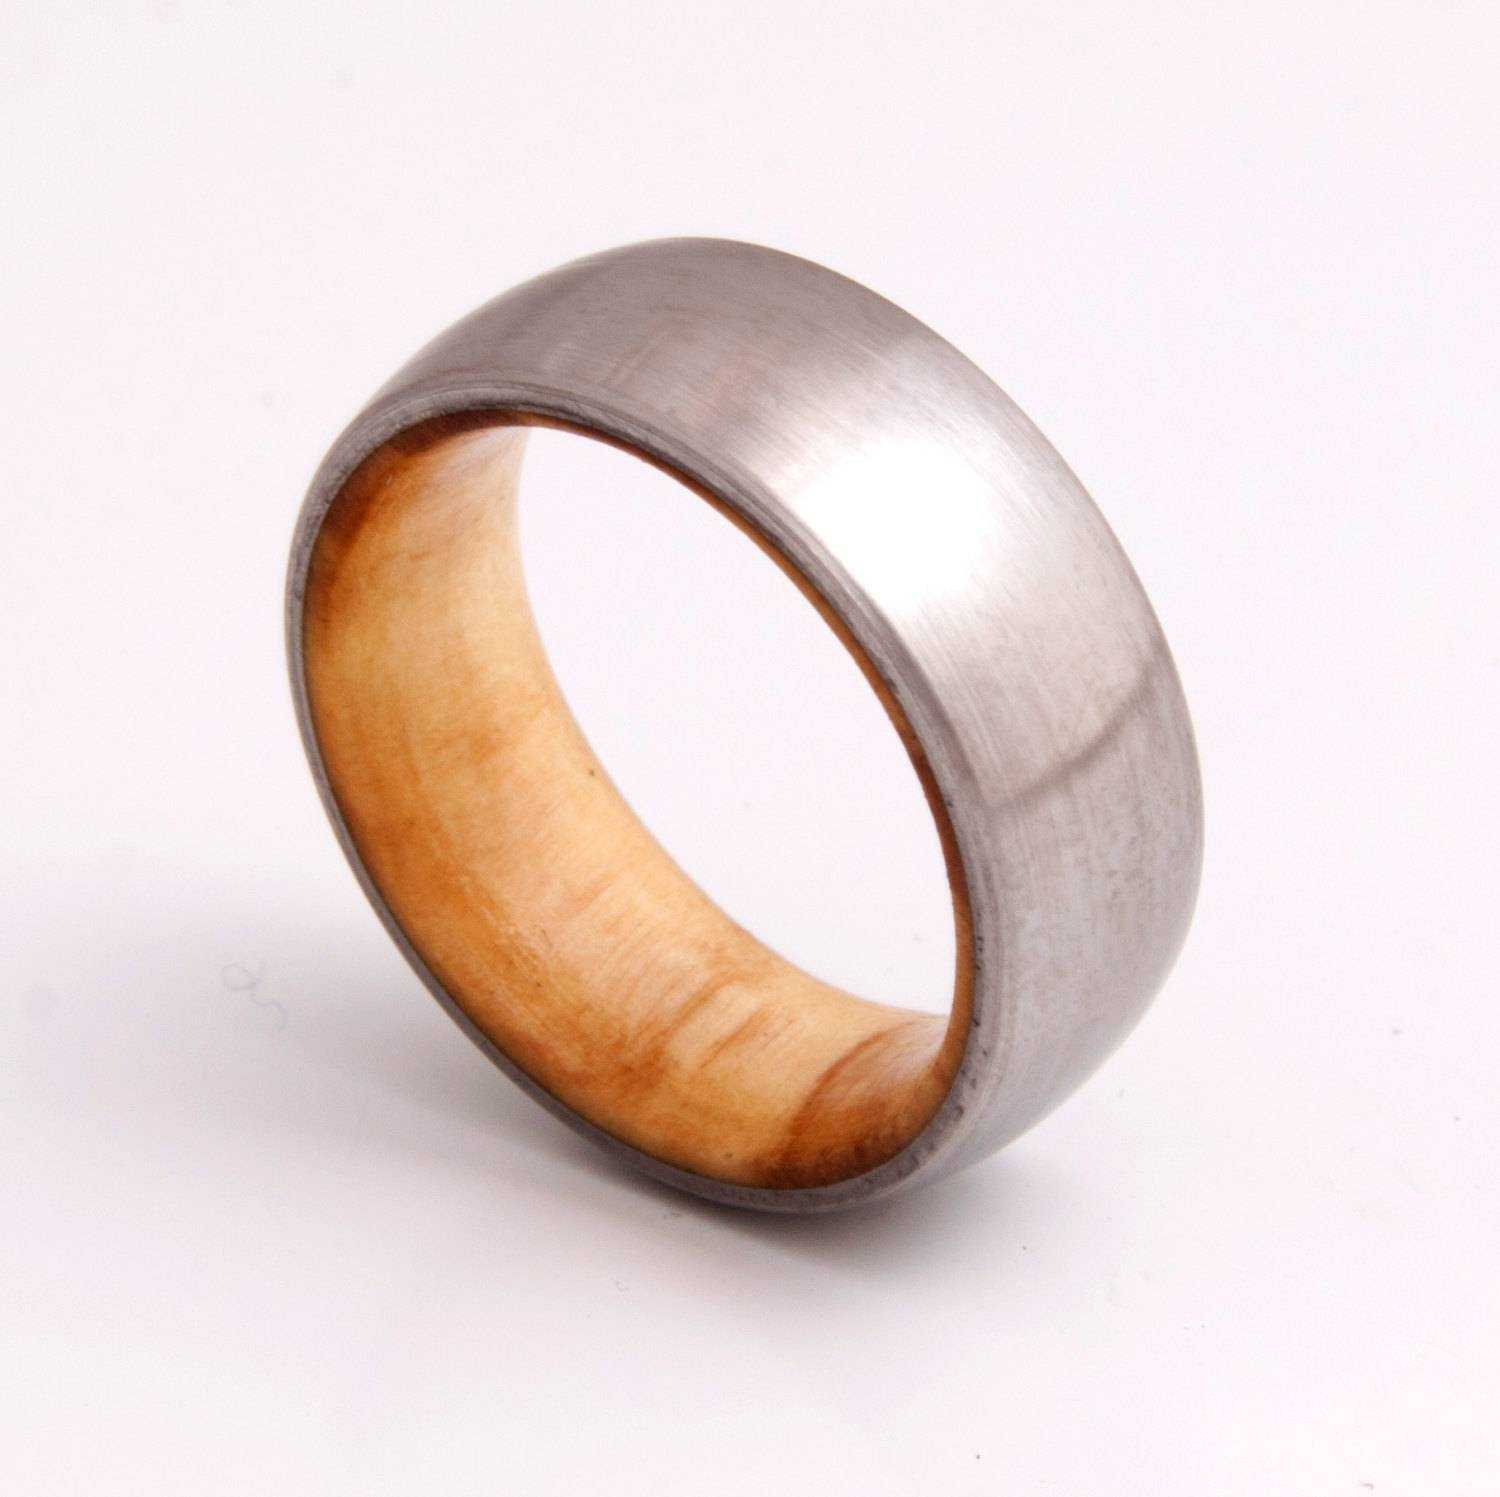 Wooden Ring / Wedding Band / Titanium Olive Wood Ring With Titanium Men Wedding Rings (View 15 of 15)